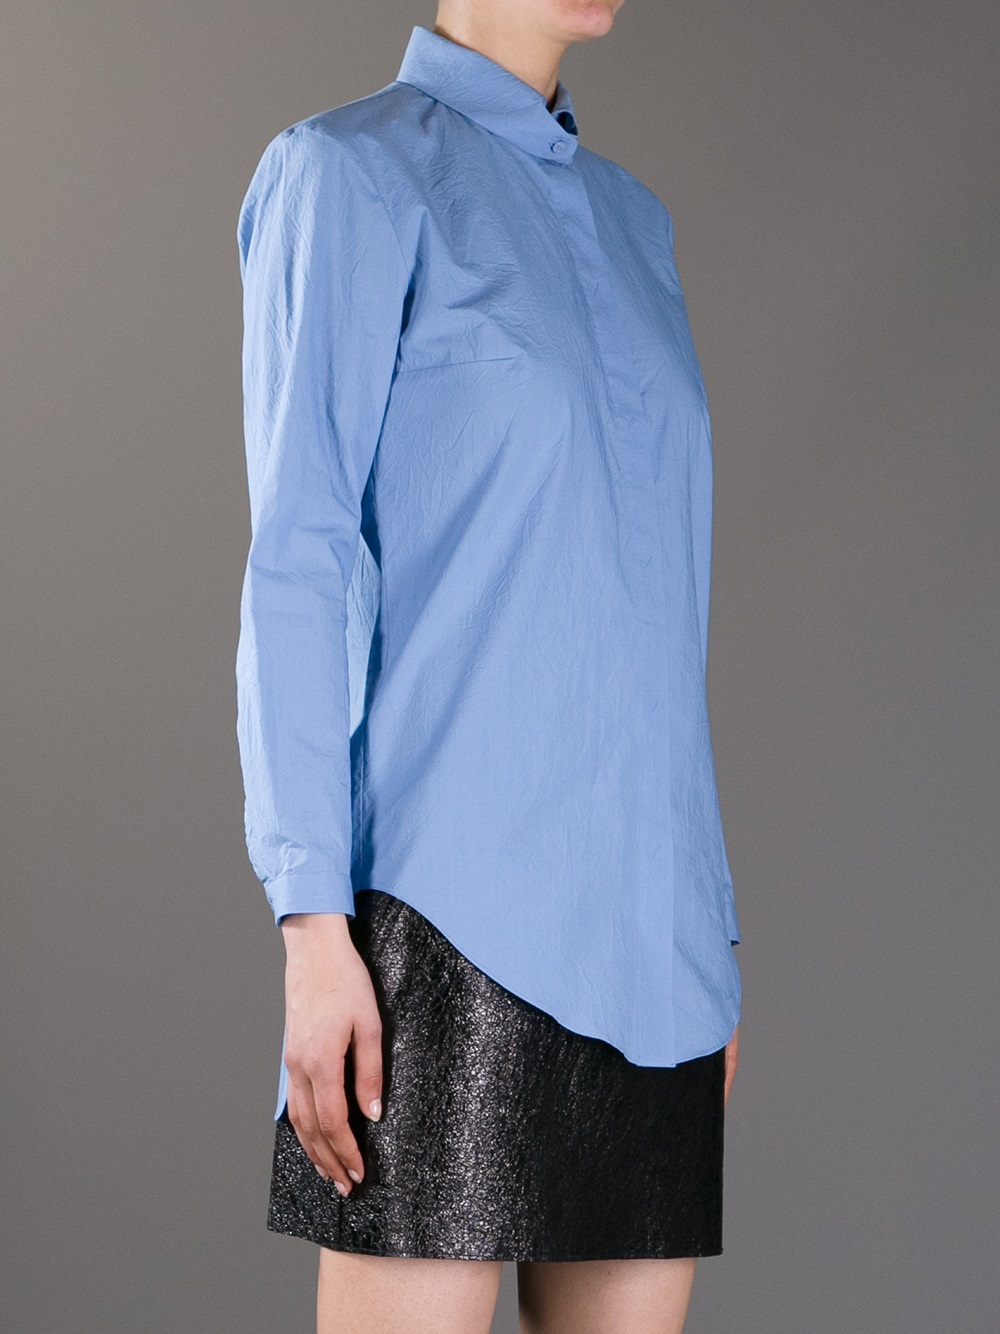 Carven Button Collar Shirt In Blue Lyst